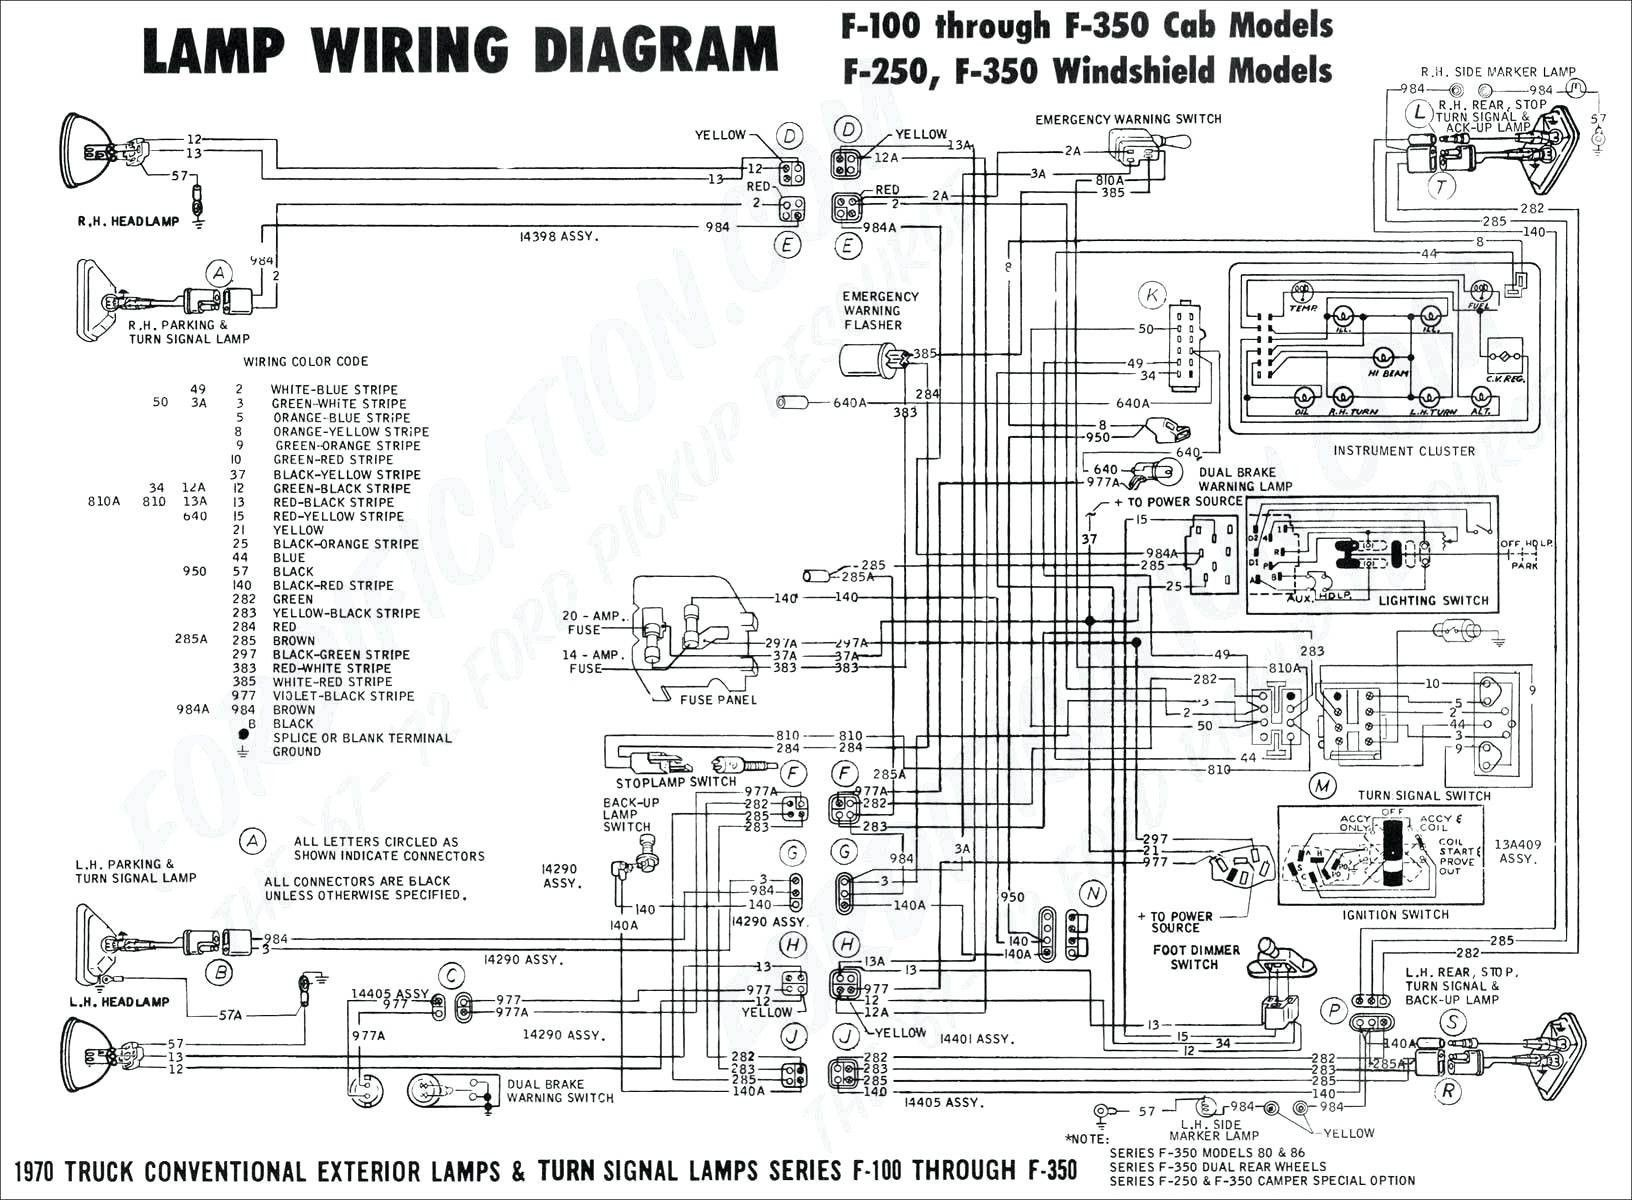 Wire Diagram for 2002 F550 Tail Lights | Honda accord, Nissan maxima, Honda  civic | Ford F550 Brake Light Wiring Diagram |  | Pinterest